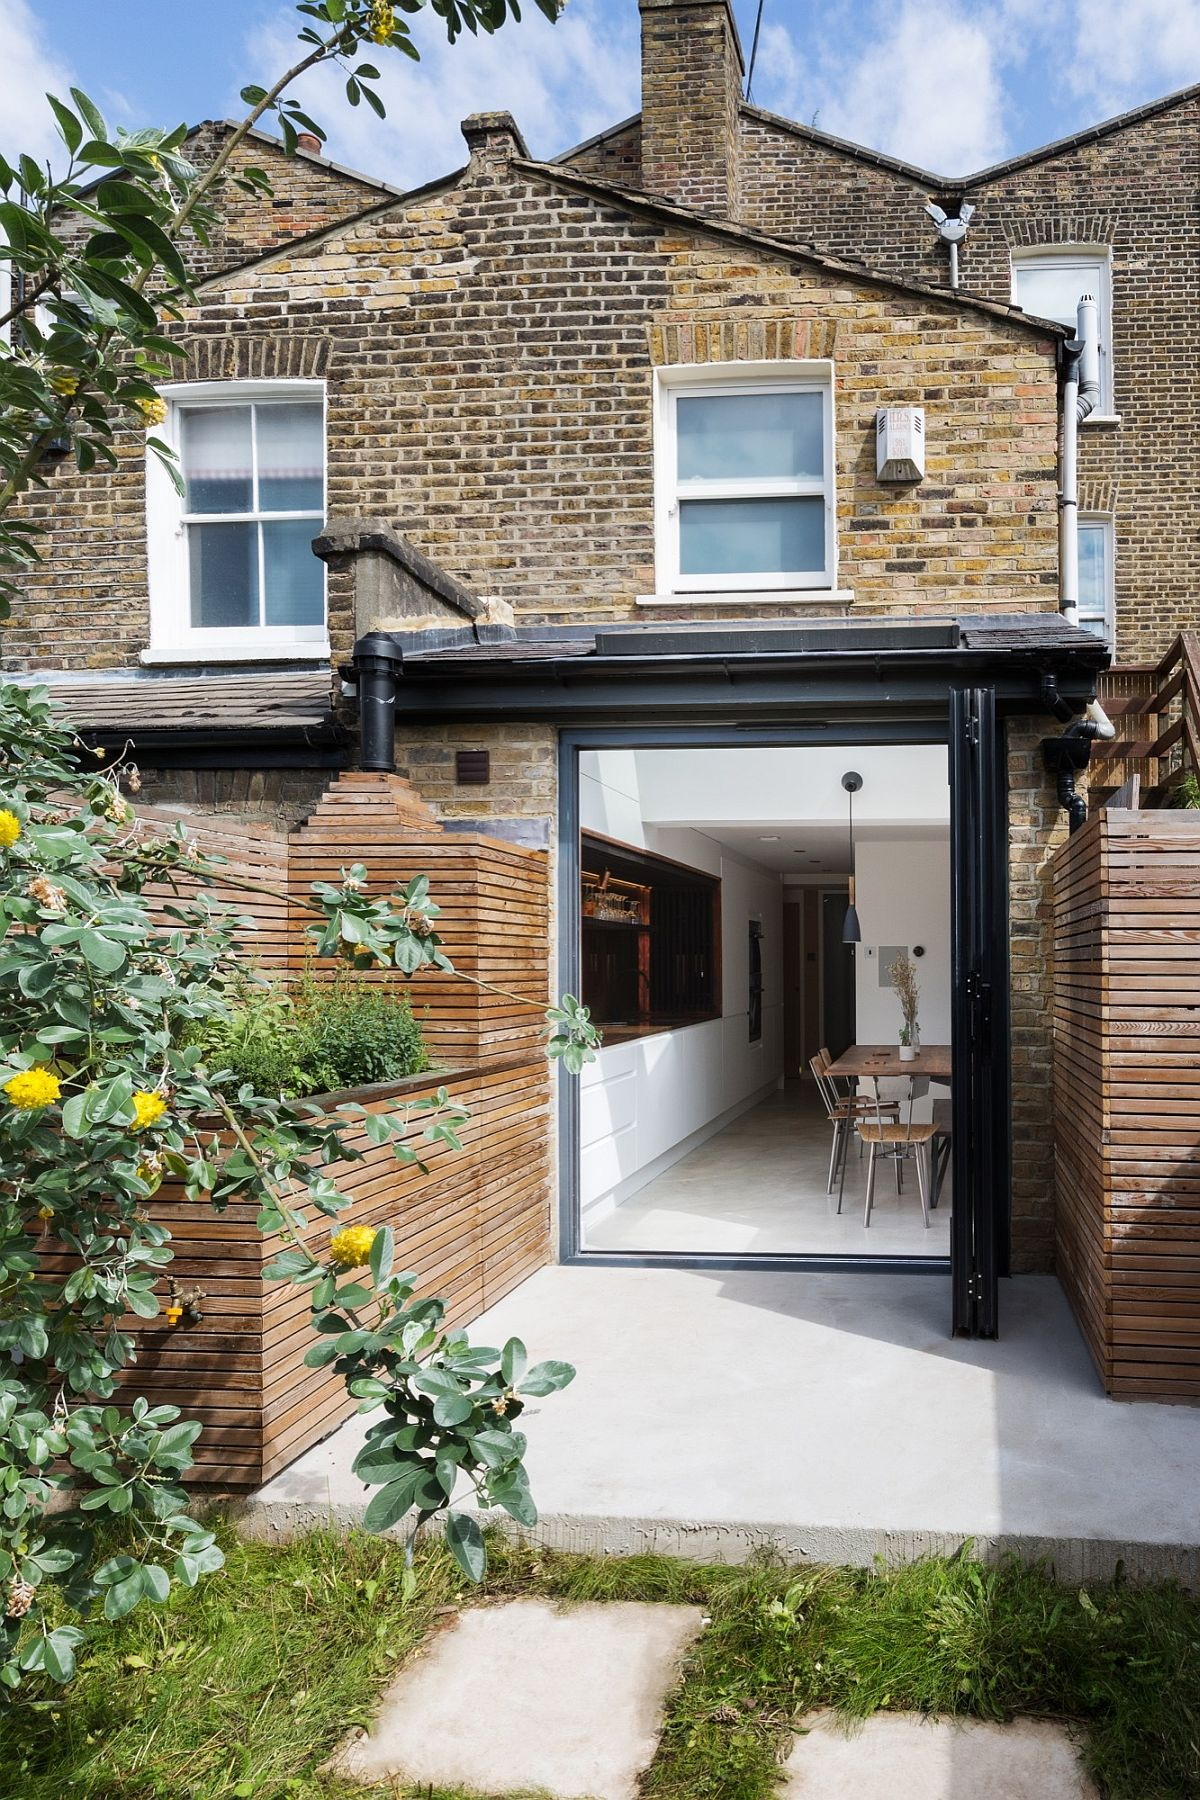 New kitchen, dining and sunken bath of the London home extend into the garden outside